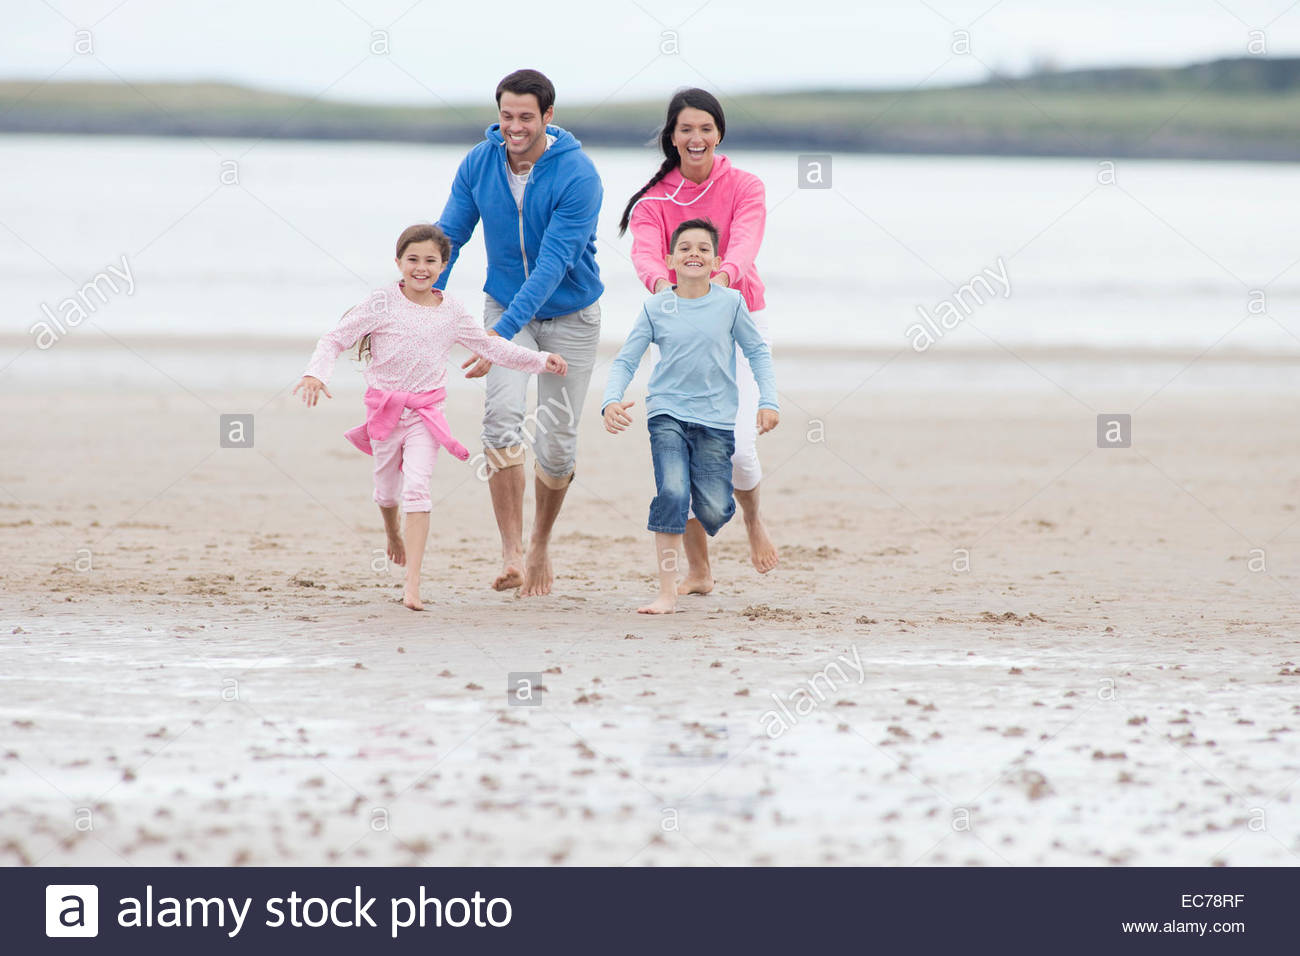 Parents chasing children on beach - Stock Image